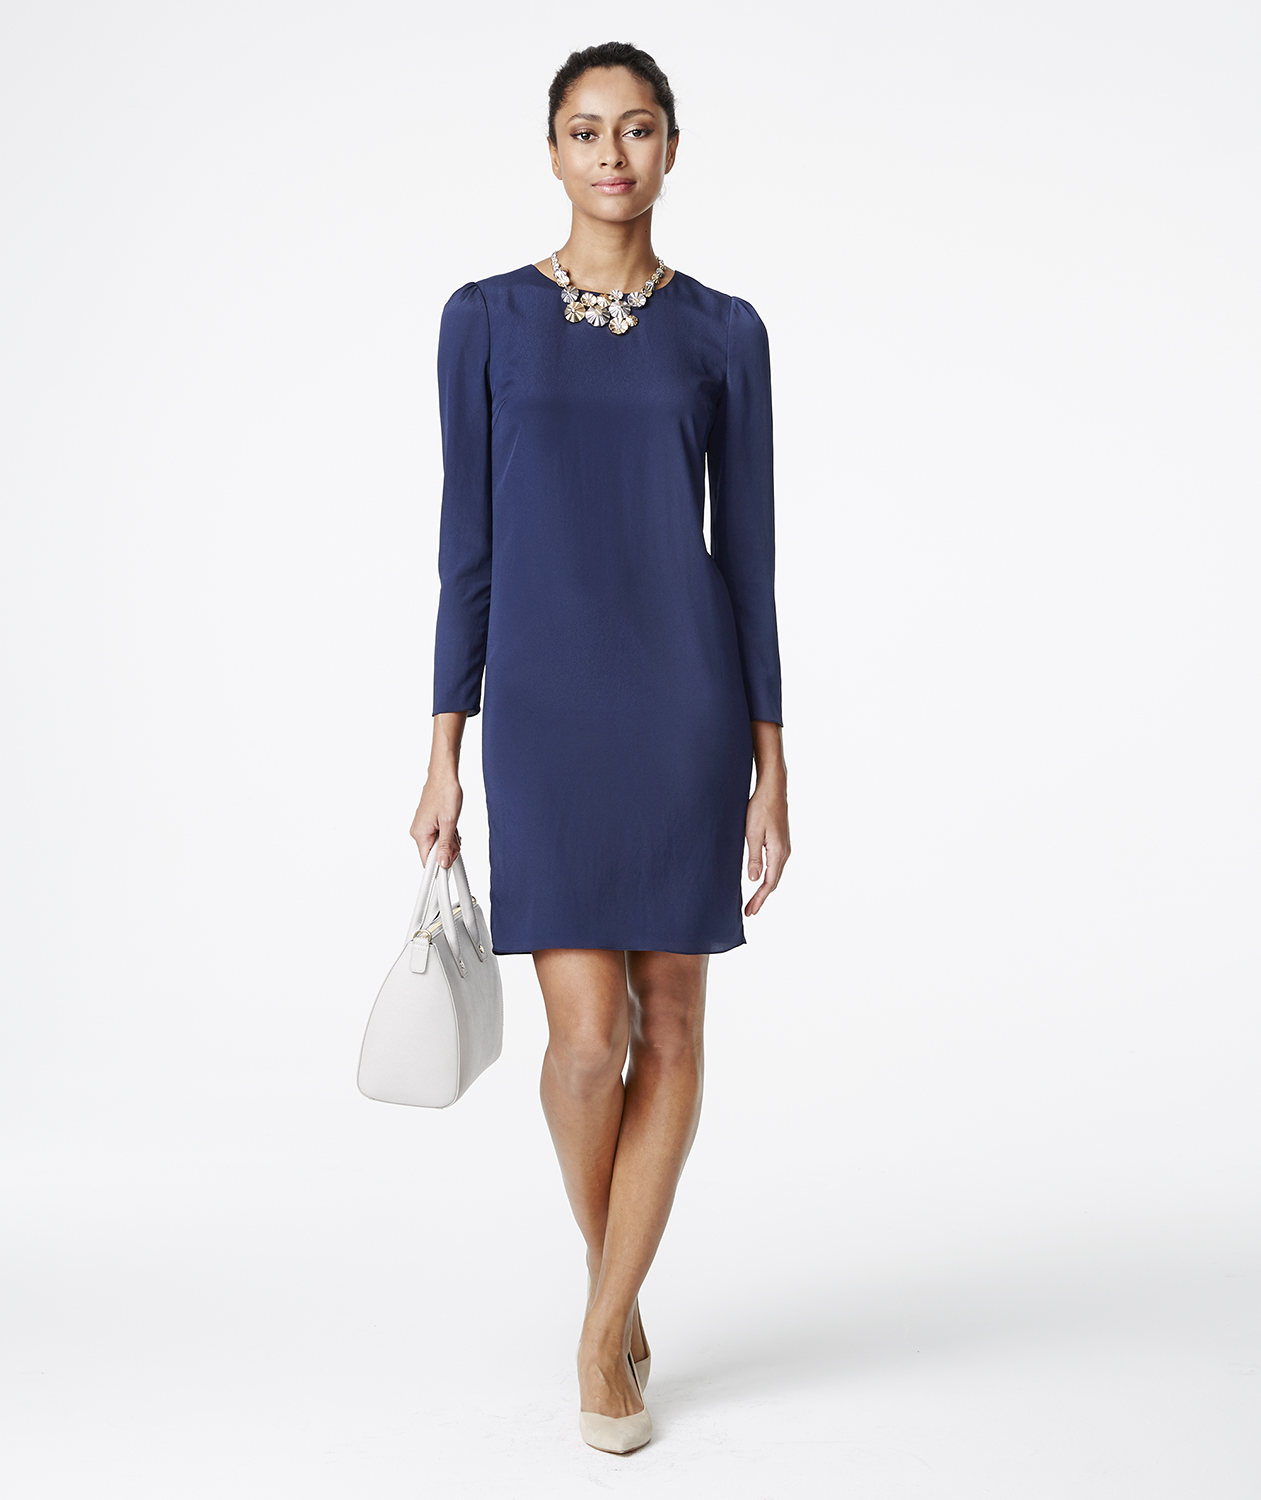 Ariana Rockefeller Nadia Tunic Dress